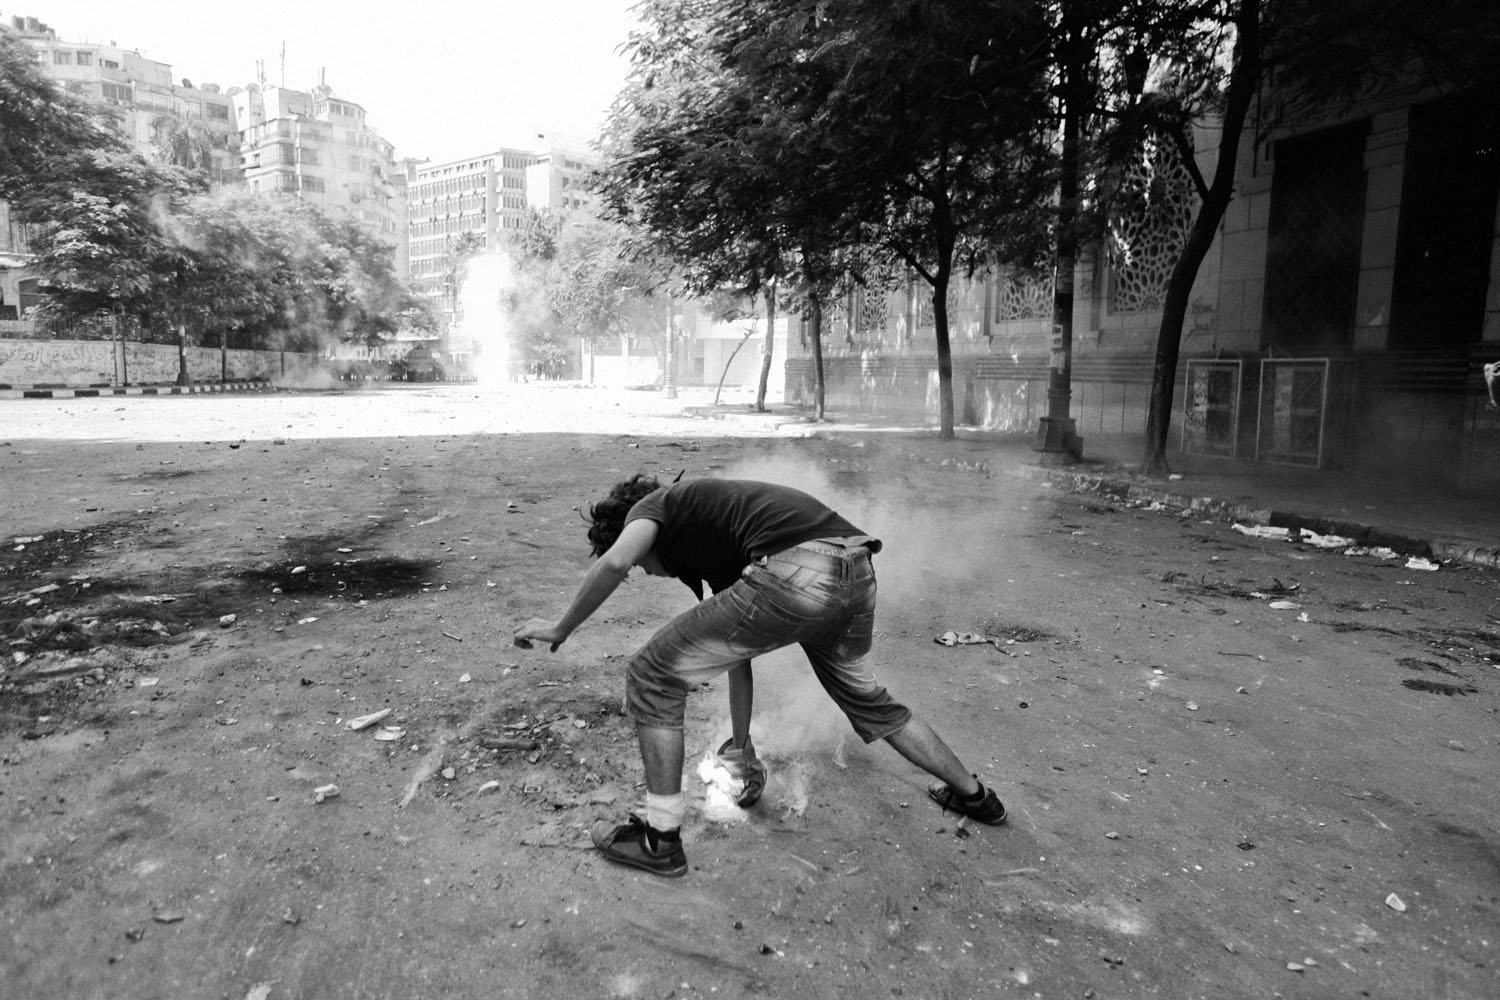 A protestor picks up a tear gas canister.